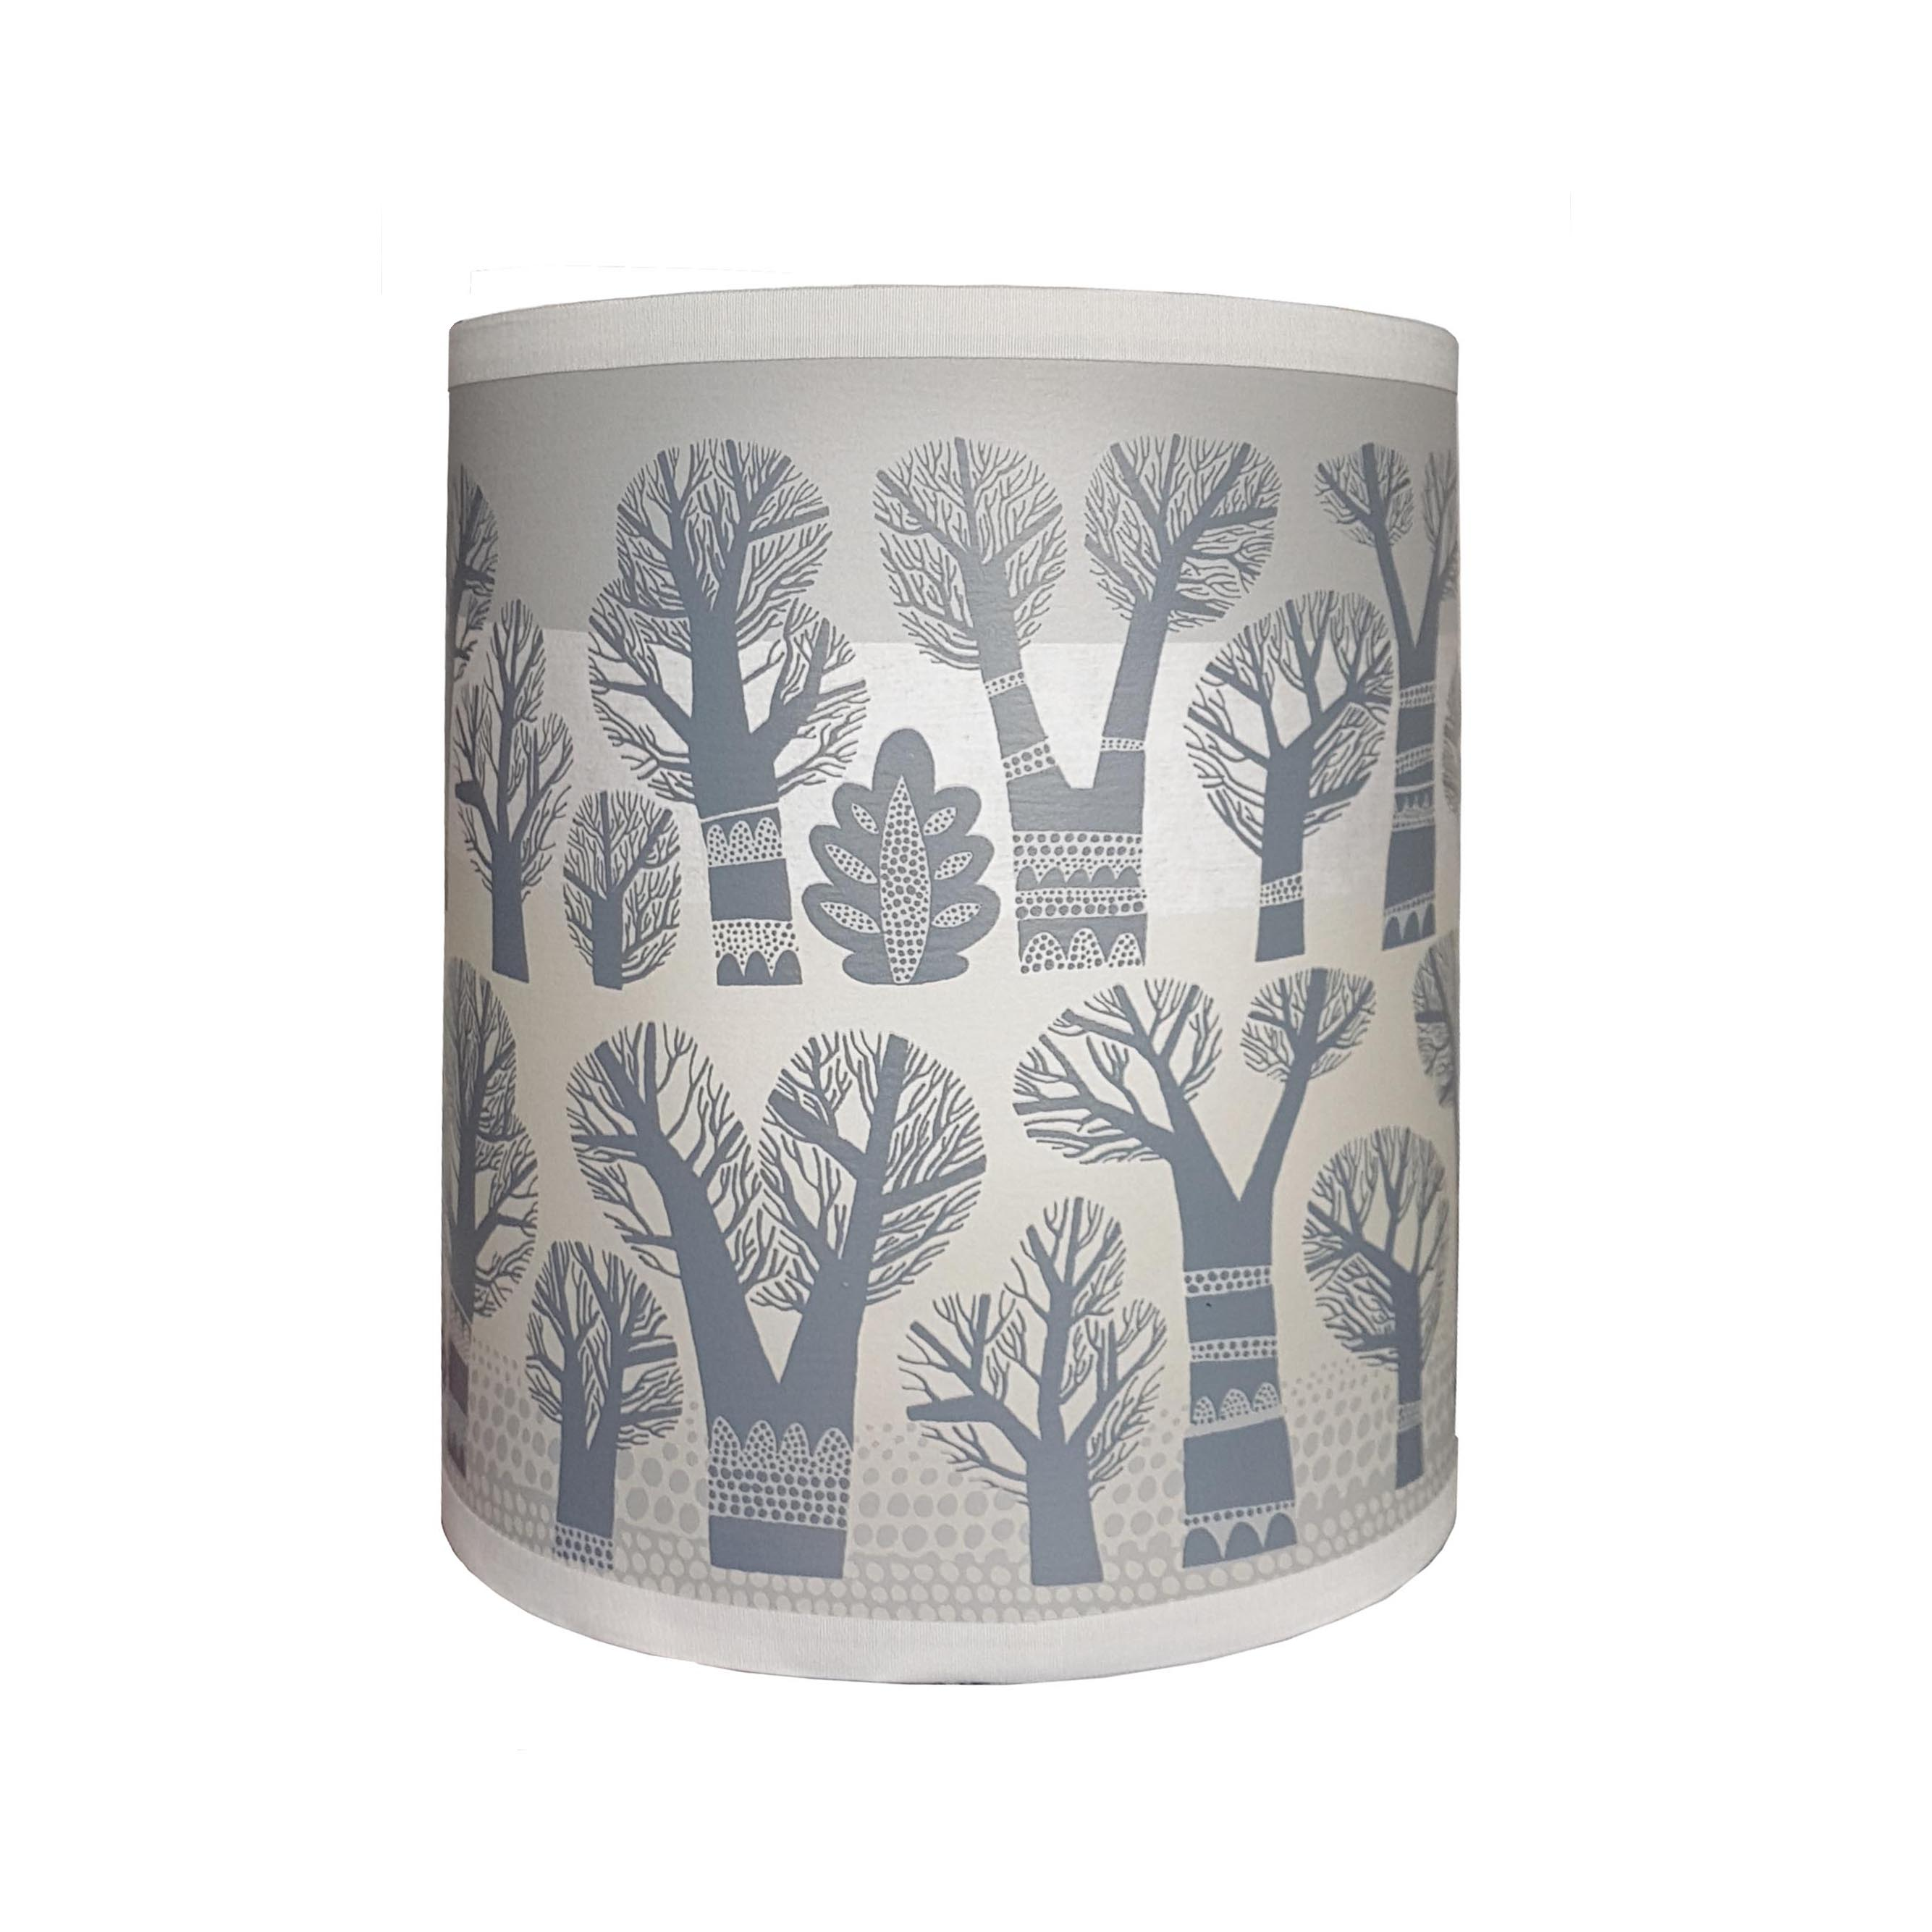 Lush Designs large lampshade printed with rows of winter trees in pale grey